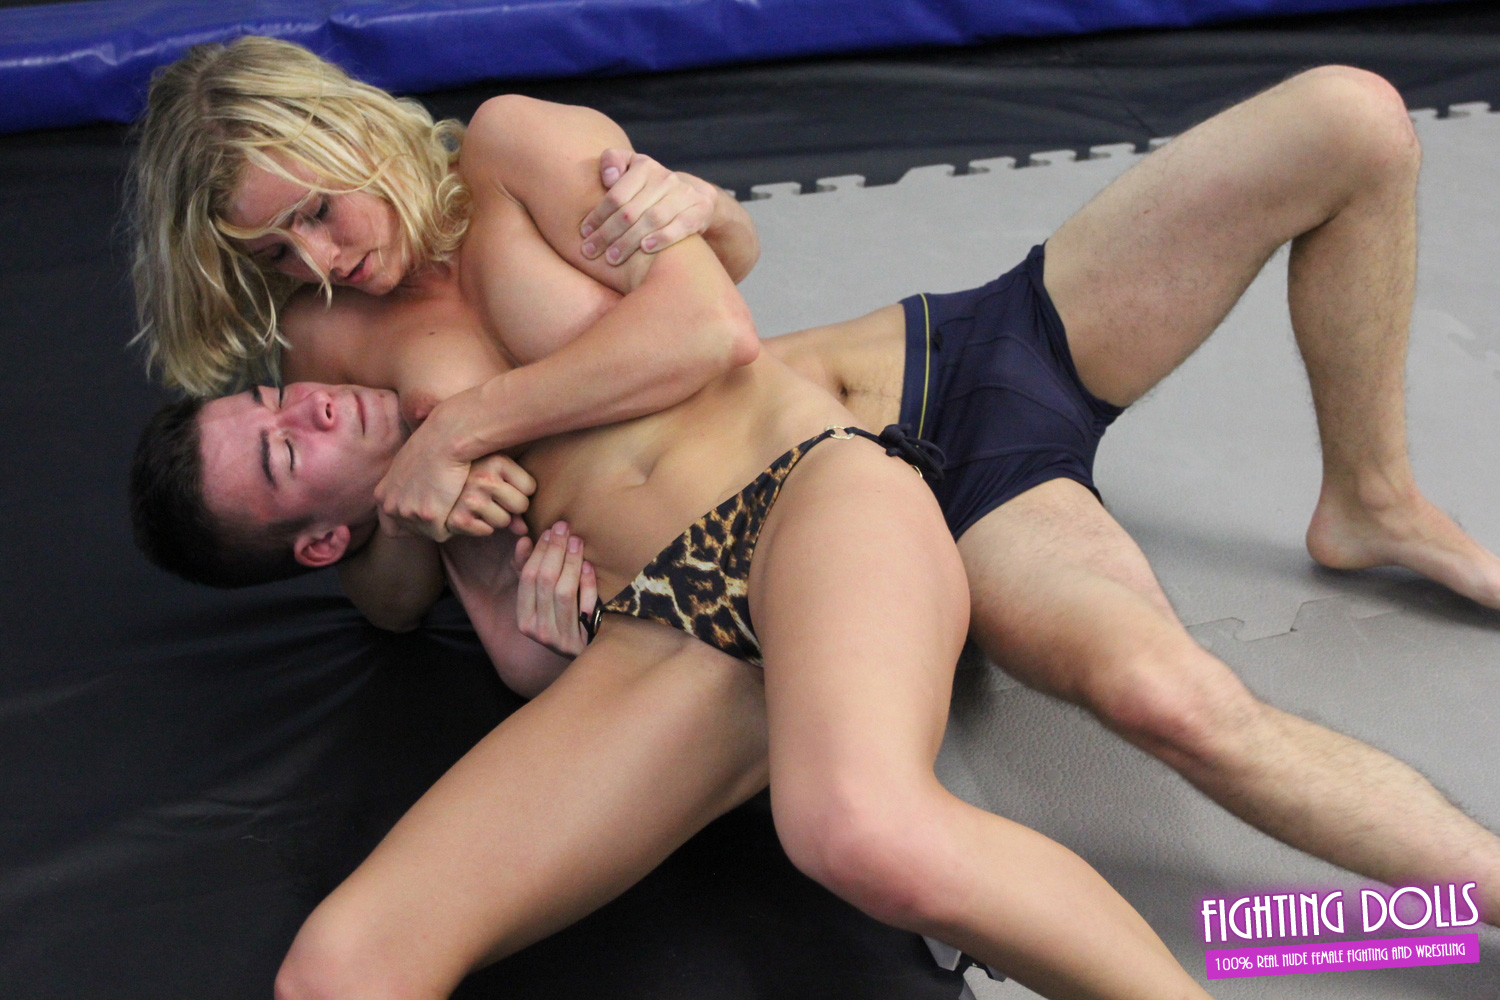 75c brust mixed wrestling forums